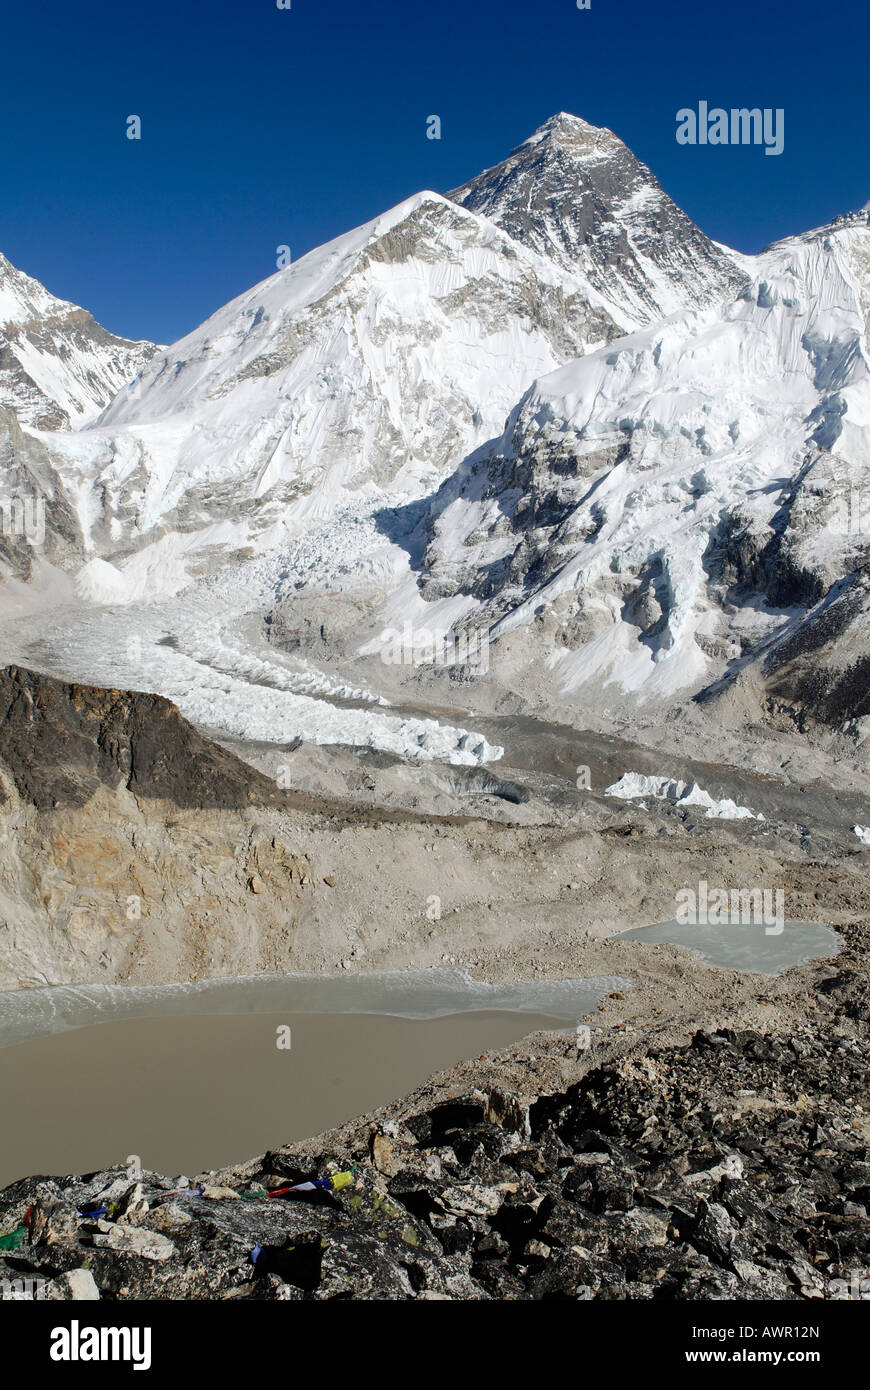 Famous view from Kala Patthar, Patar (5545) towards Mount Everest (8850), Nuptse (7861) and Khumbu Glacier, Sagarmatha - Stock Image